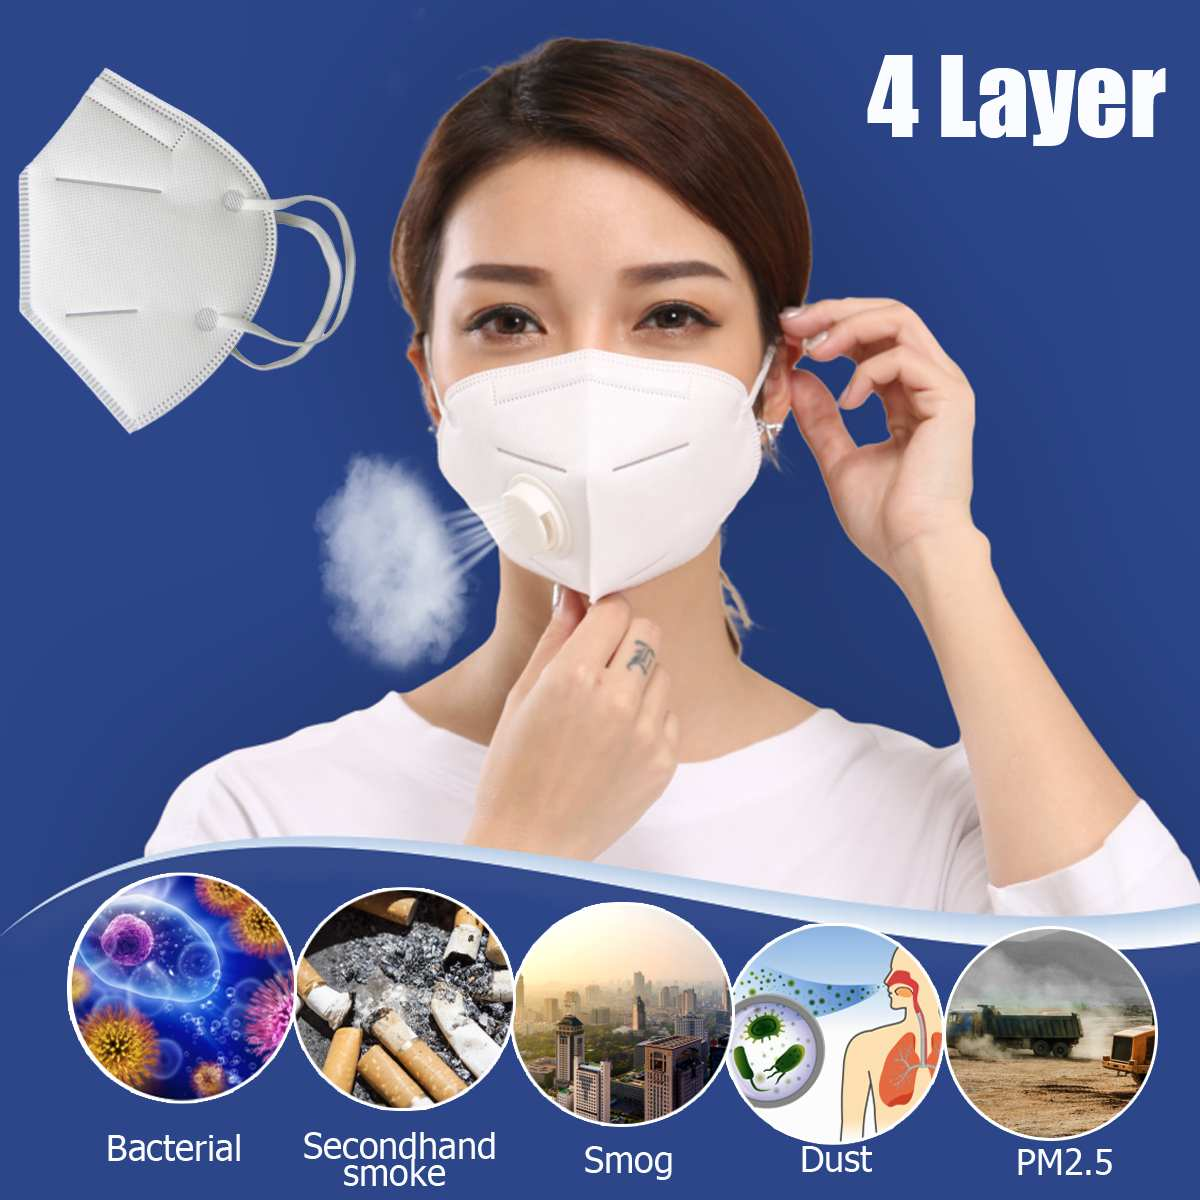 Glorsun Fashion Washable N99 Anti Odor Cotton Pollution Mask Pm2.5 N95 Face Mouth Air Filter Wholesale Anti Odor Smog Dust Mask Back To Search Resultsbeauty & Health